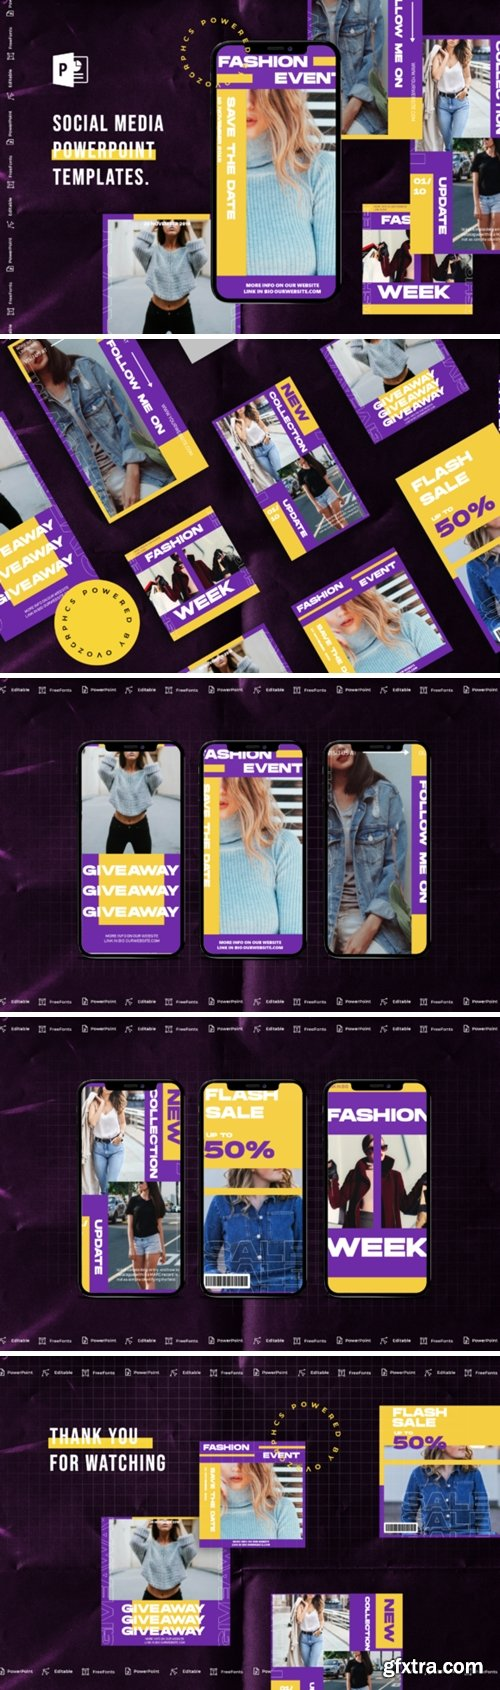 Instagram Story Template 2013264